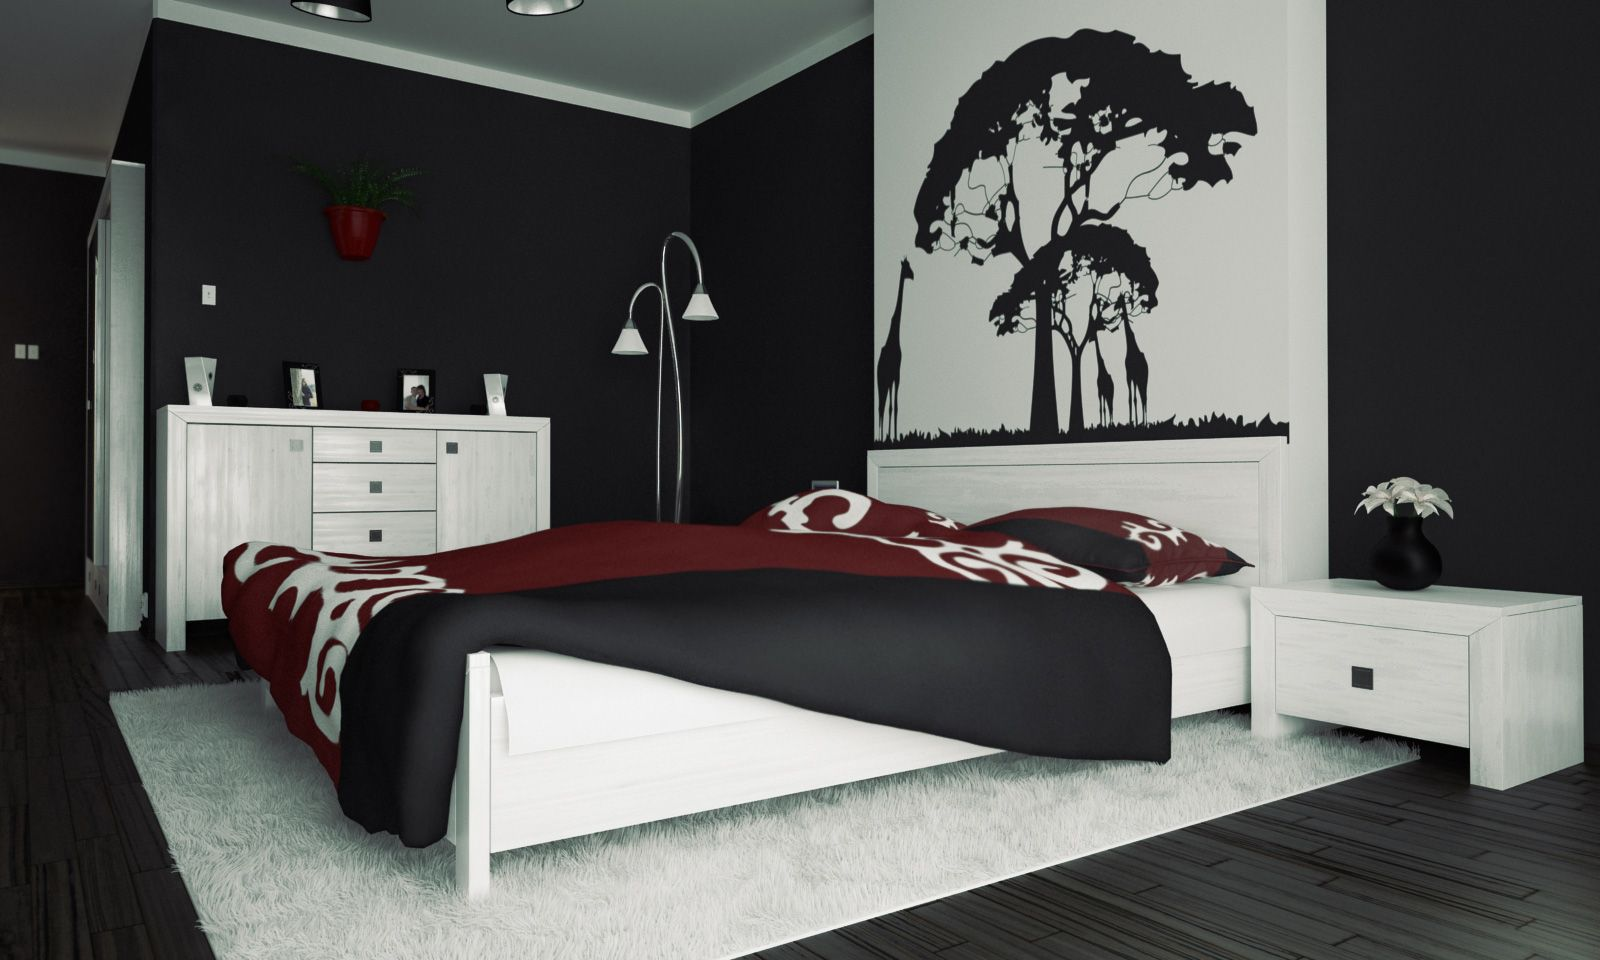 Fullsize Of Black Bedroom Decorations